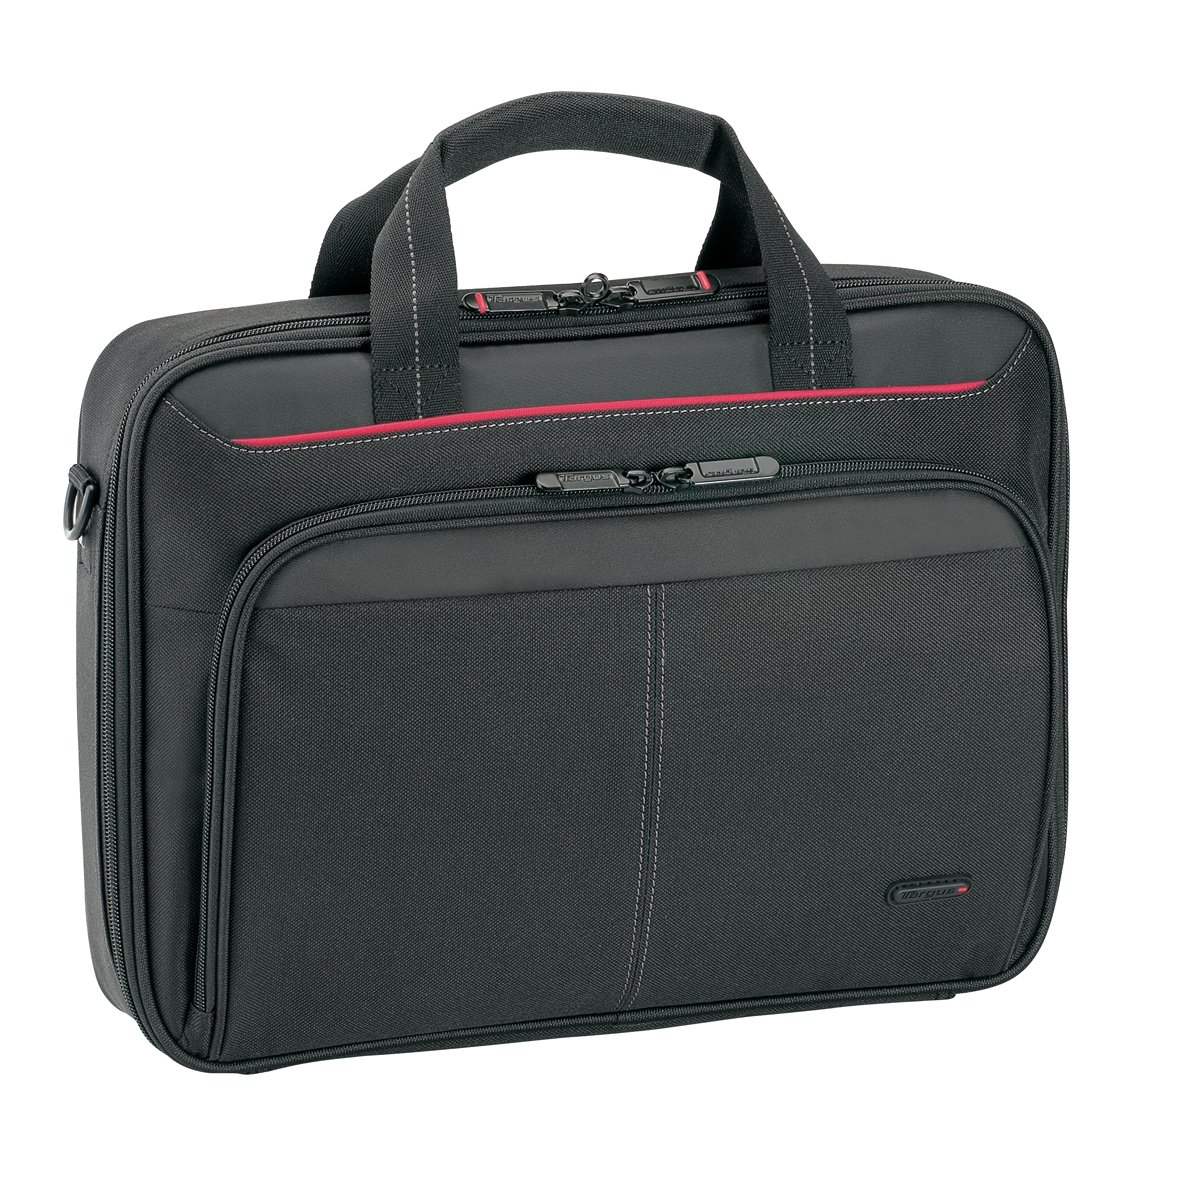 Targus Classic Clamshell Premium Protective Laptop Bag with Handles specifically designed to fit up to 12-13.4-Inch, Black (CN313)